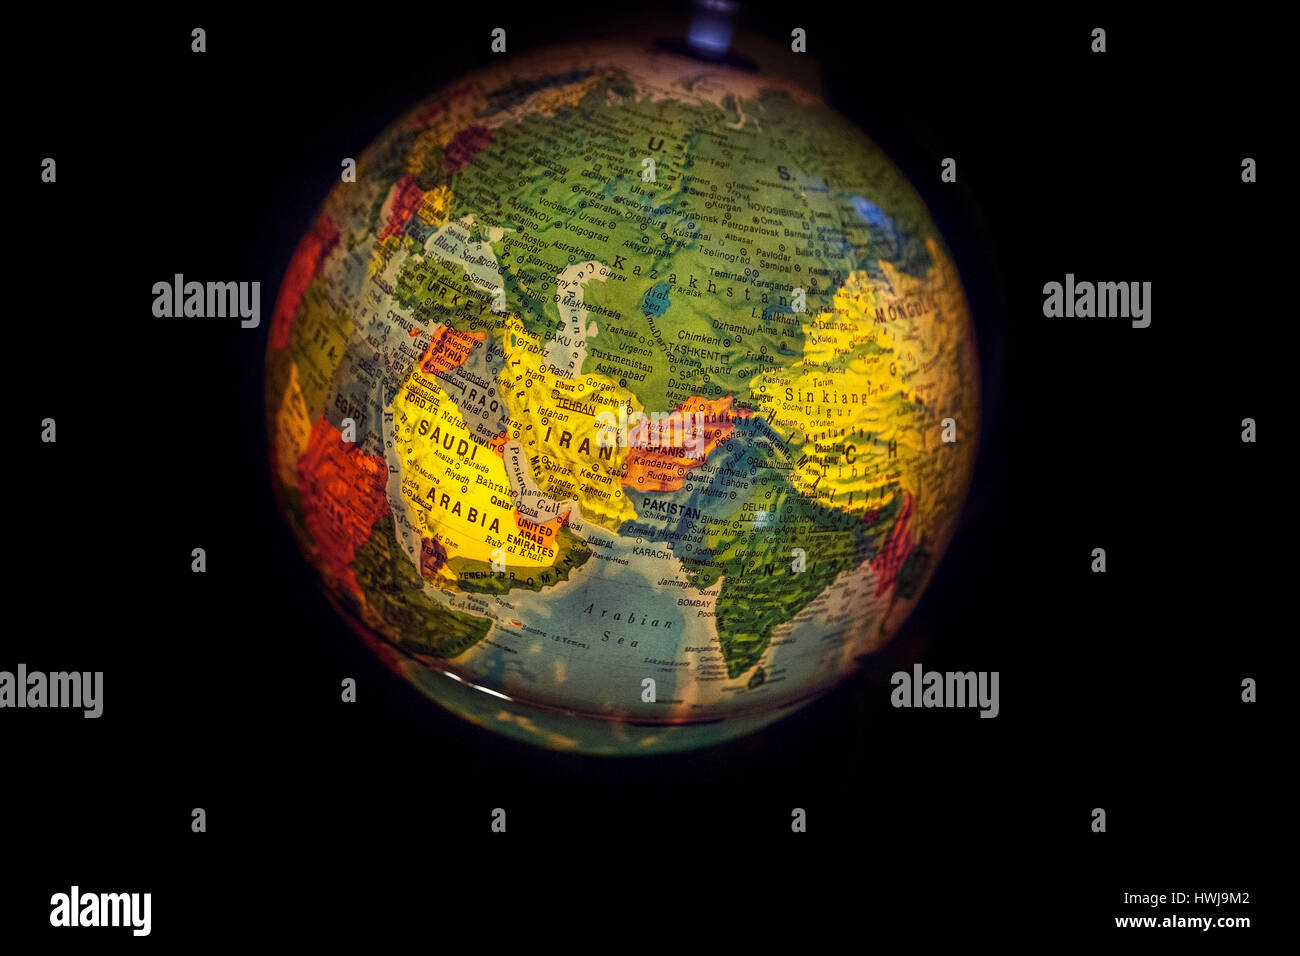 Close up of old fashioned world globe a ball shaped map lit from close up of old fashioned world globe a ball shaped map lit from within focusing on asia india ussr arabia china gumiabroncs Images